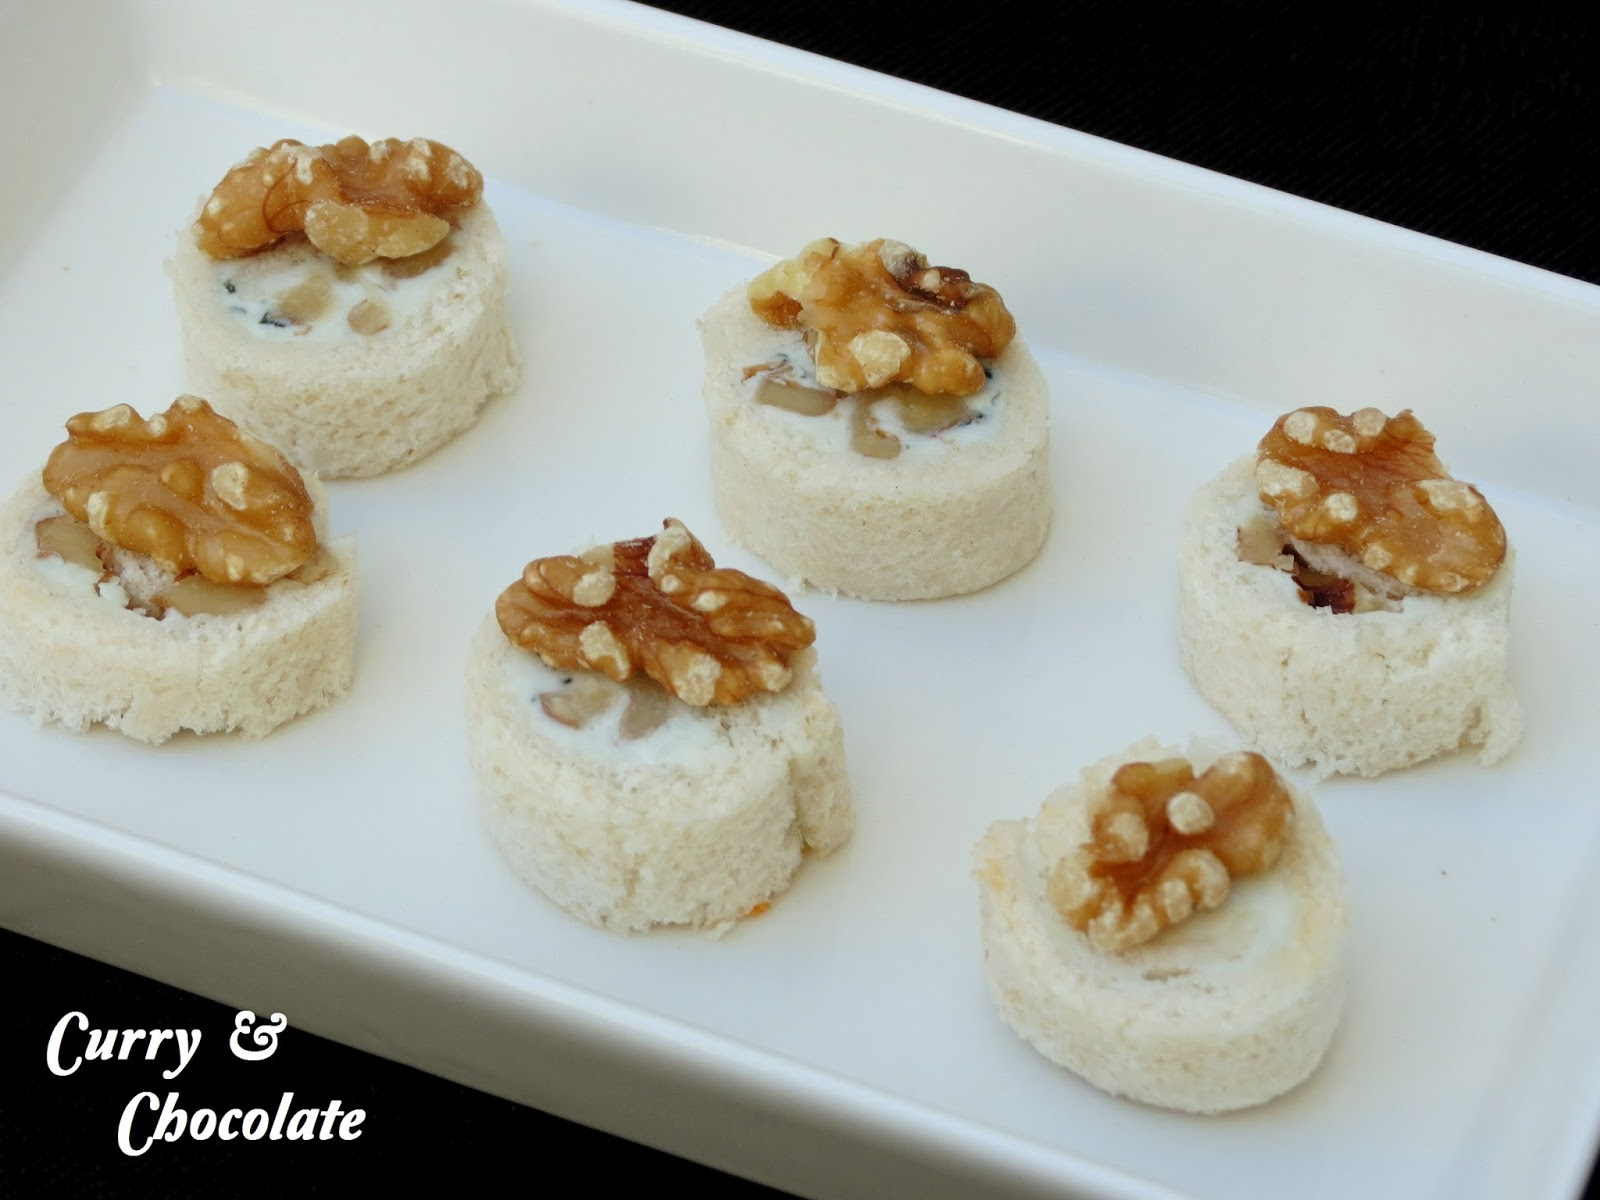 Curry y chocolate canap s f ciles parte 2 easy canapes for Canape in english